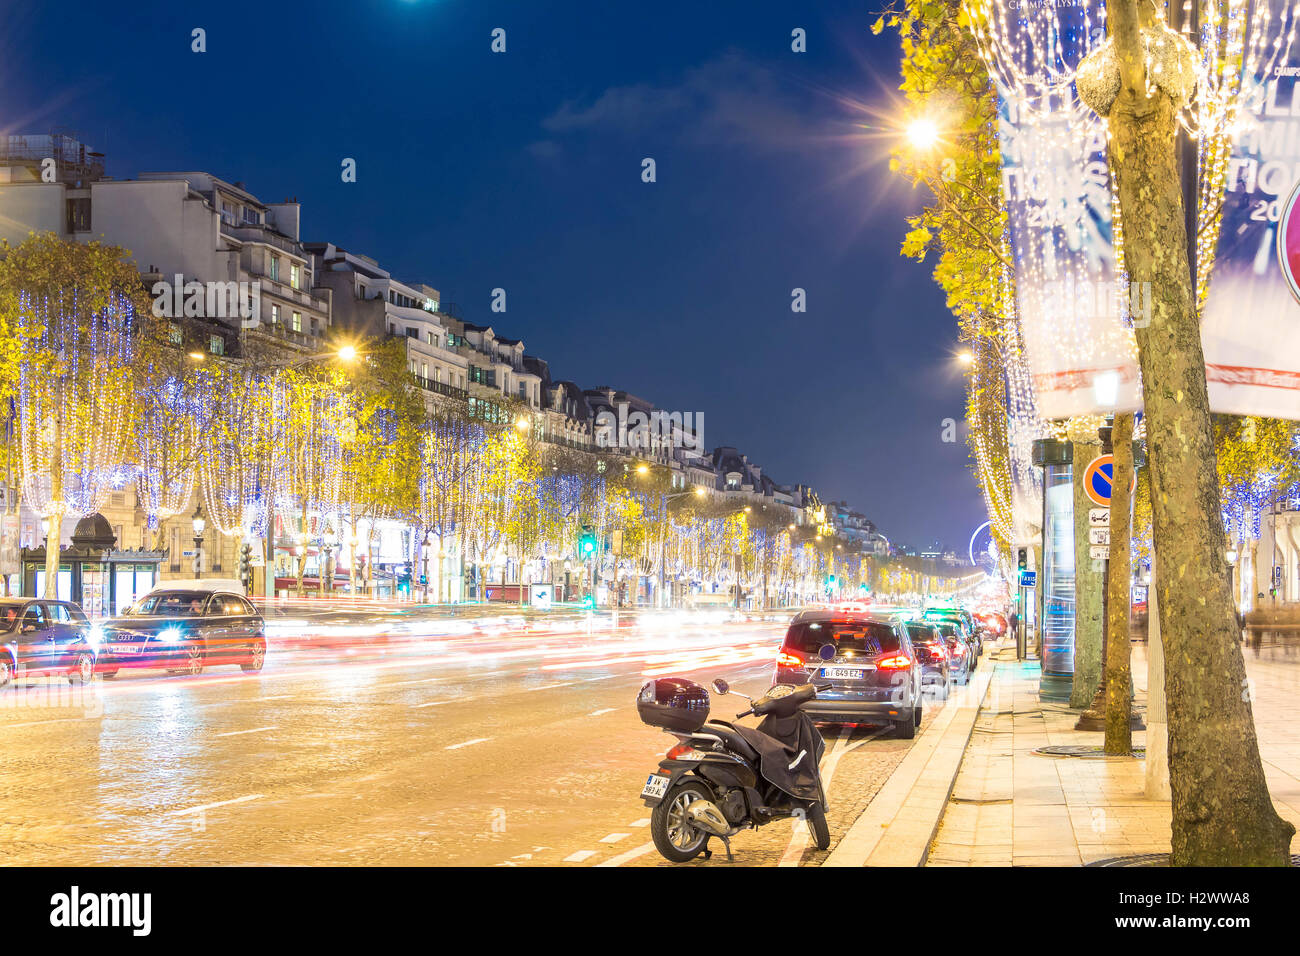 Paris ; France-November 23, 2015 : la décoration de Noël sur l'Avenue des Champs Elysées, Photo Stock